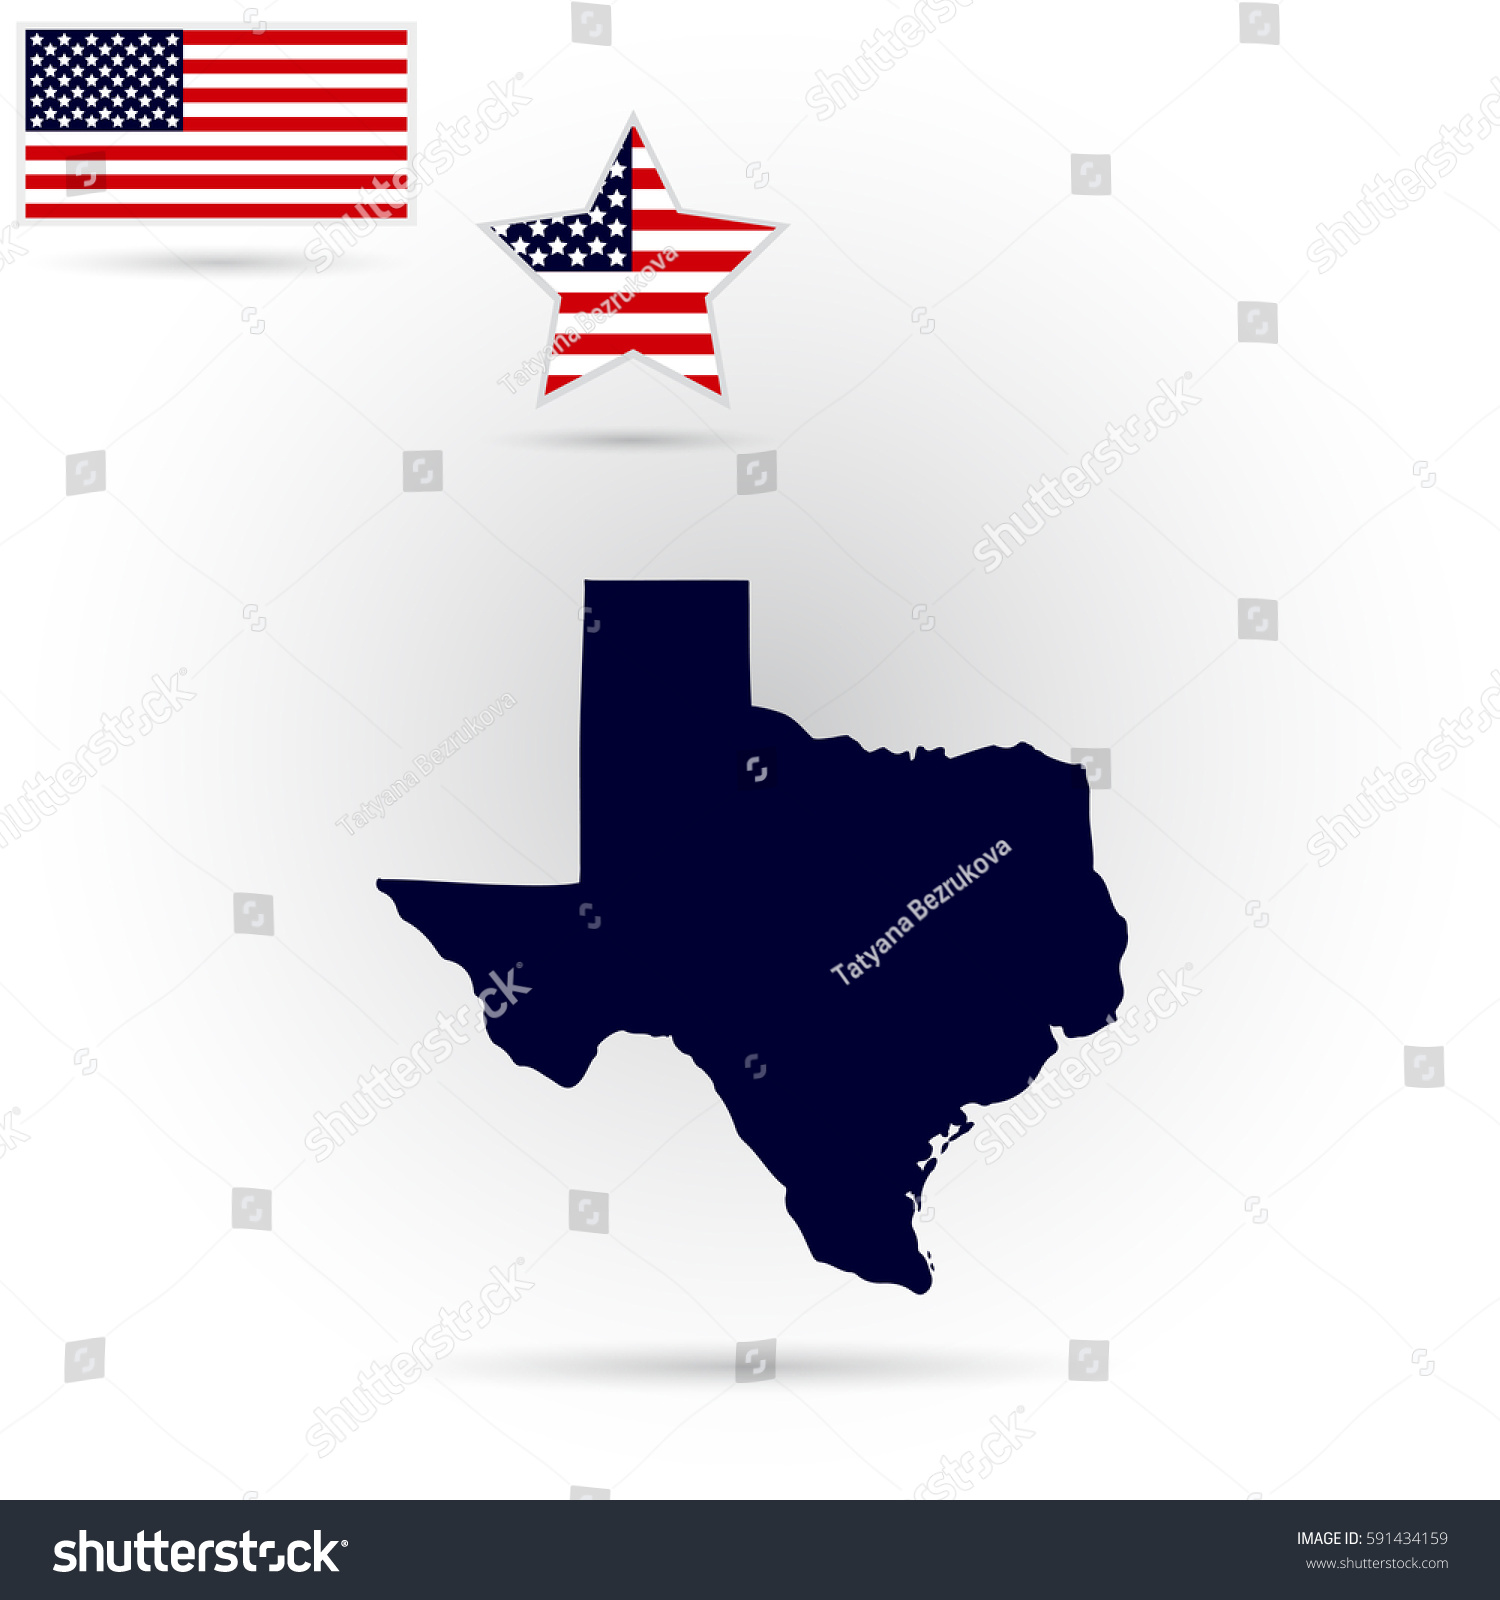 Map Us State Texas On Gray Stock Vector Shutterstock - Texas on the us map